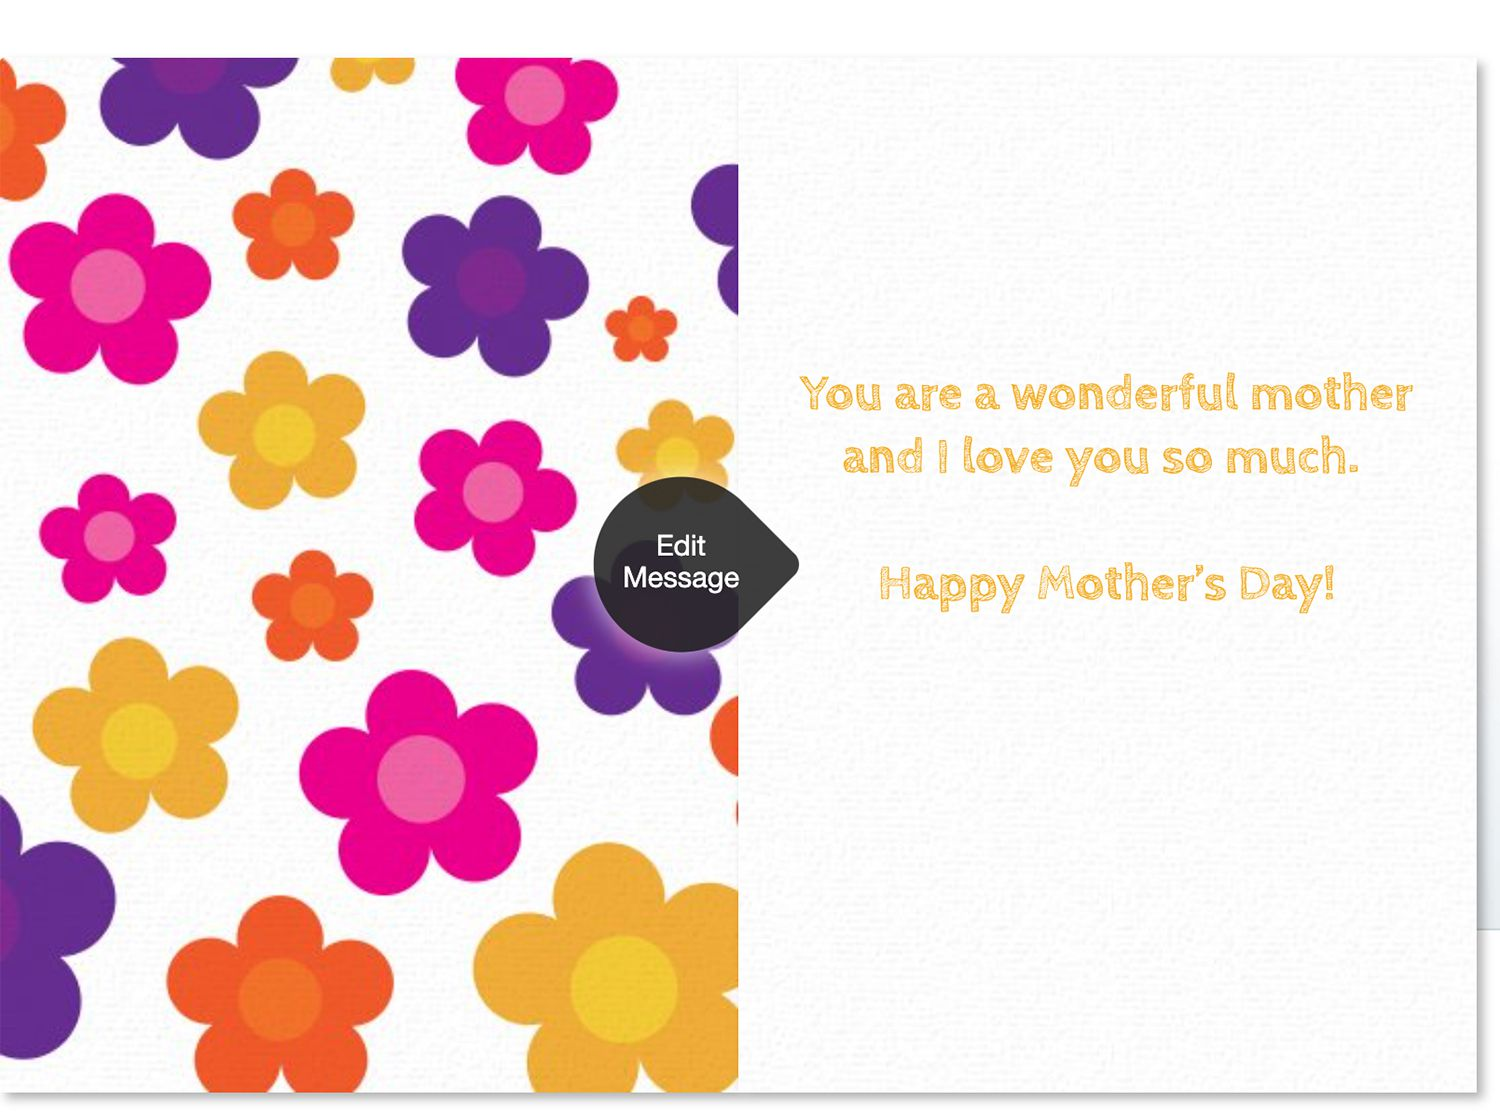 Customizable flower-themed Mother's Day e-card from Punchbowl e-card website